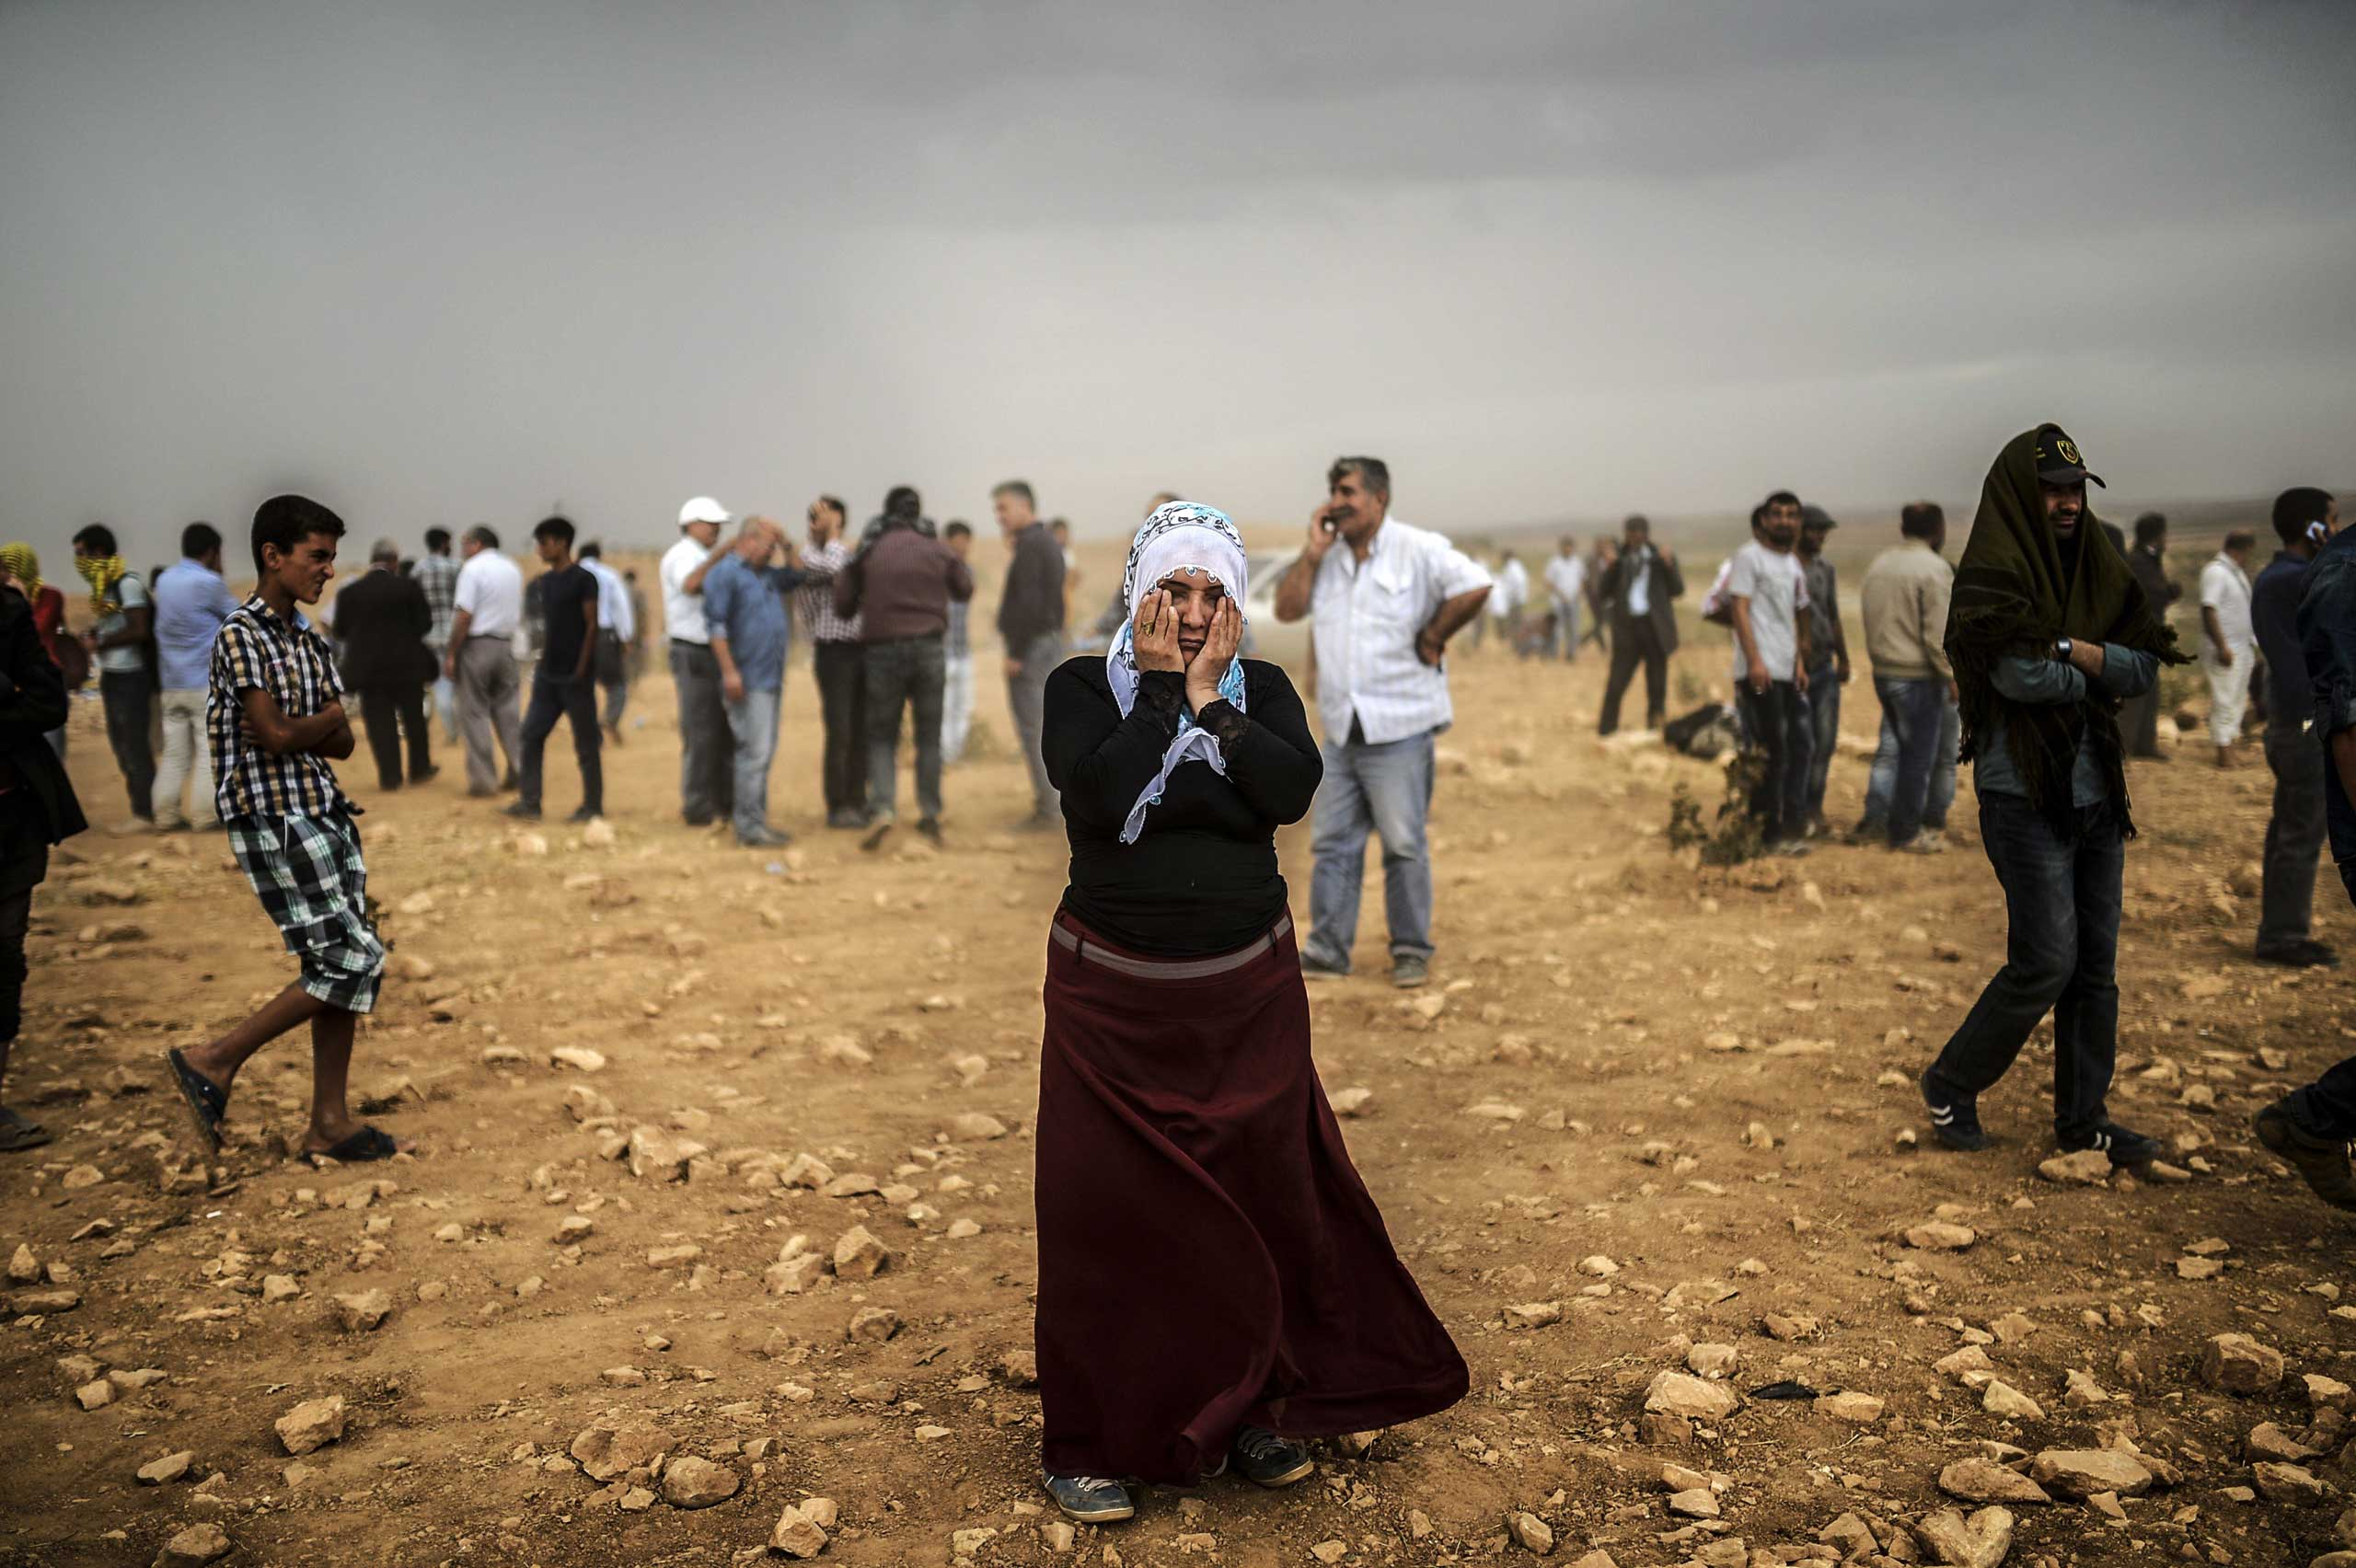 A Syrian Kurdish woman wipes her eyes during a dust storm on a hill where she and others stand watching clashes between jihadists of the Islamic State (IS) and Kurdish fighters, at Swedi village in Sanliurfa province, Turkey, on Sept. 24, 2014.